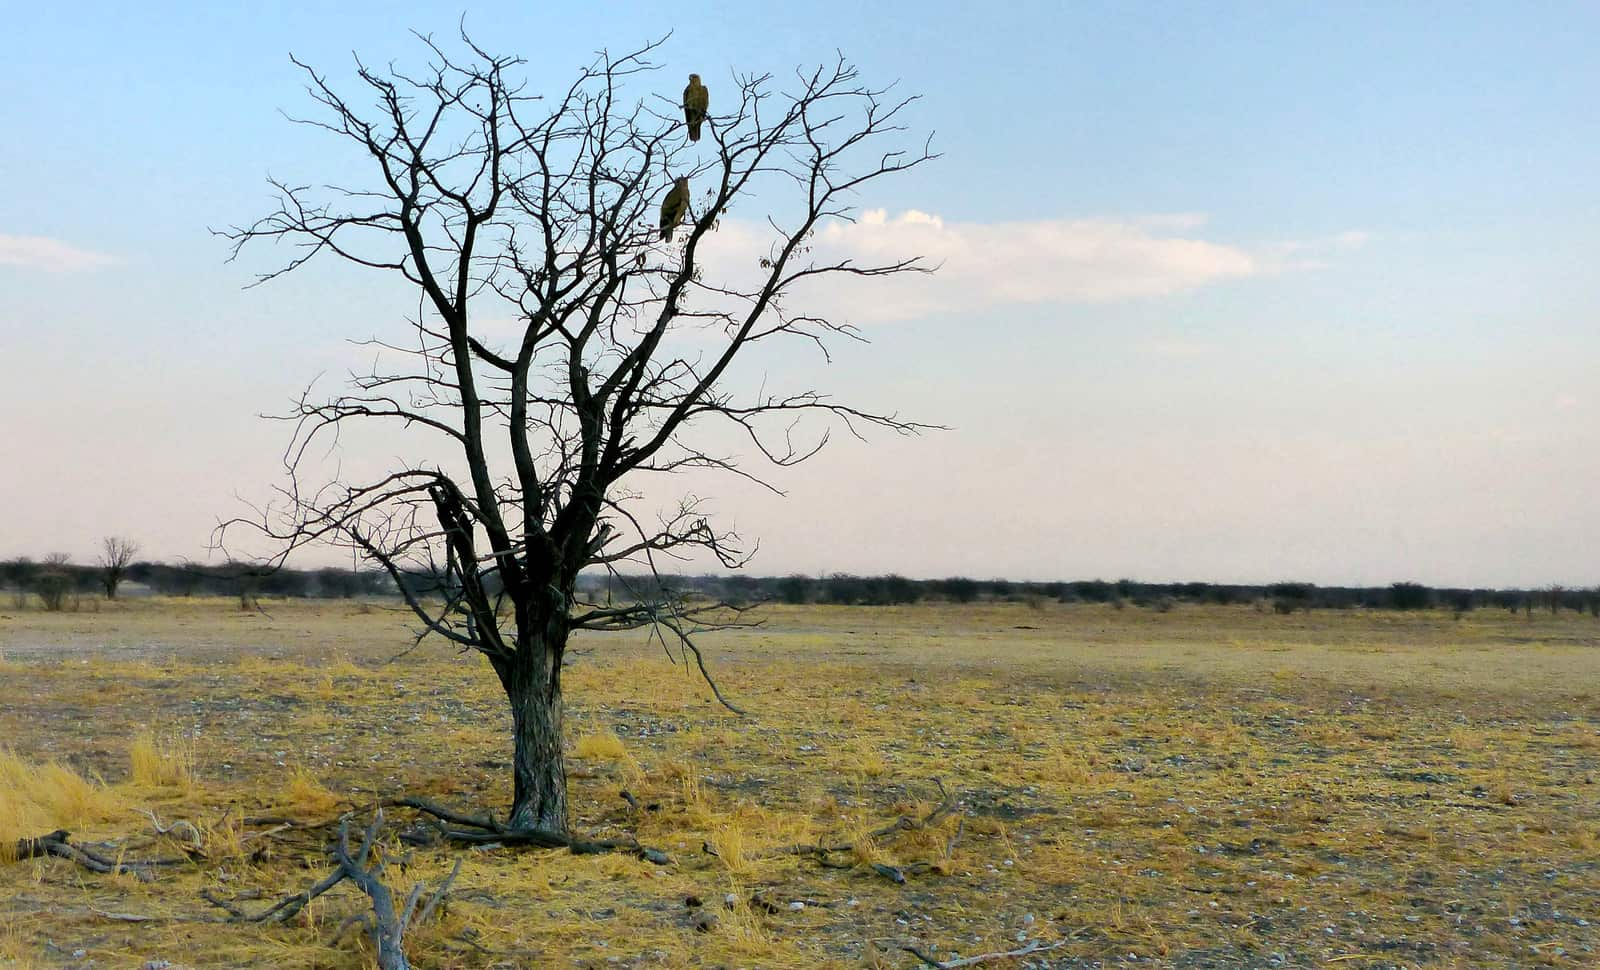 Eagles at Etosha National Park